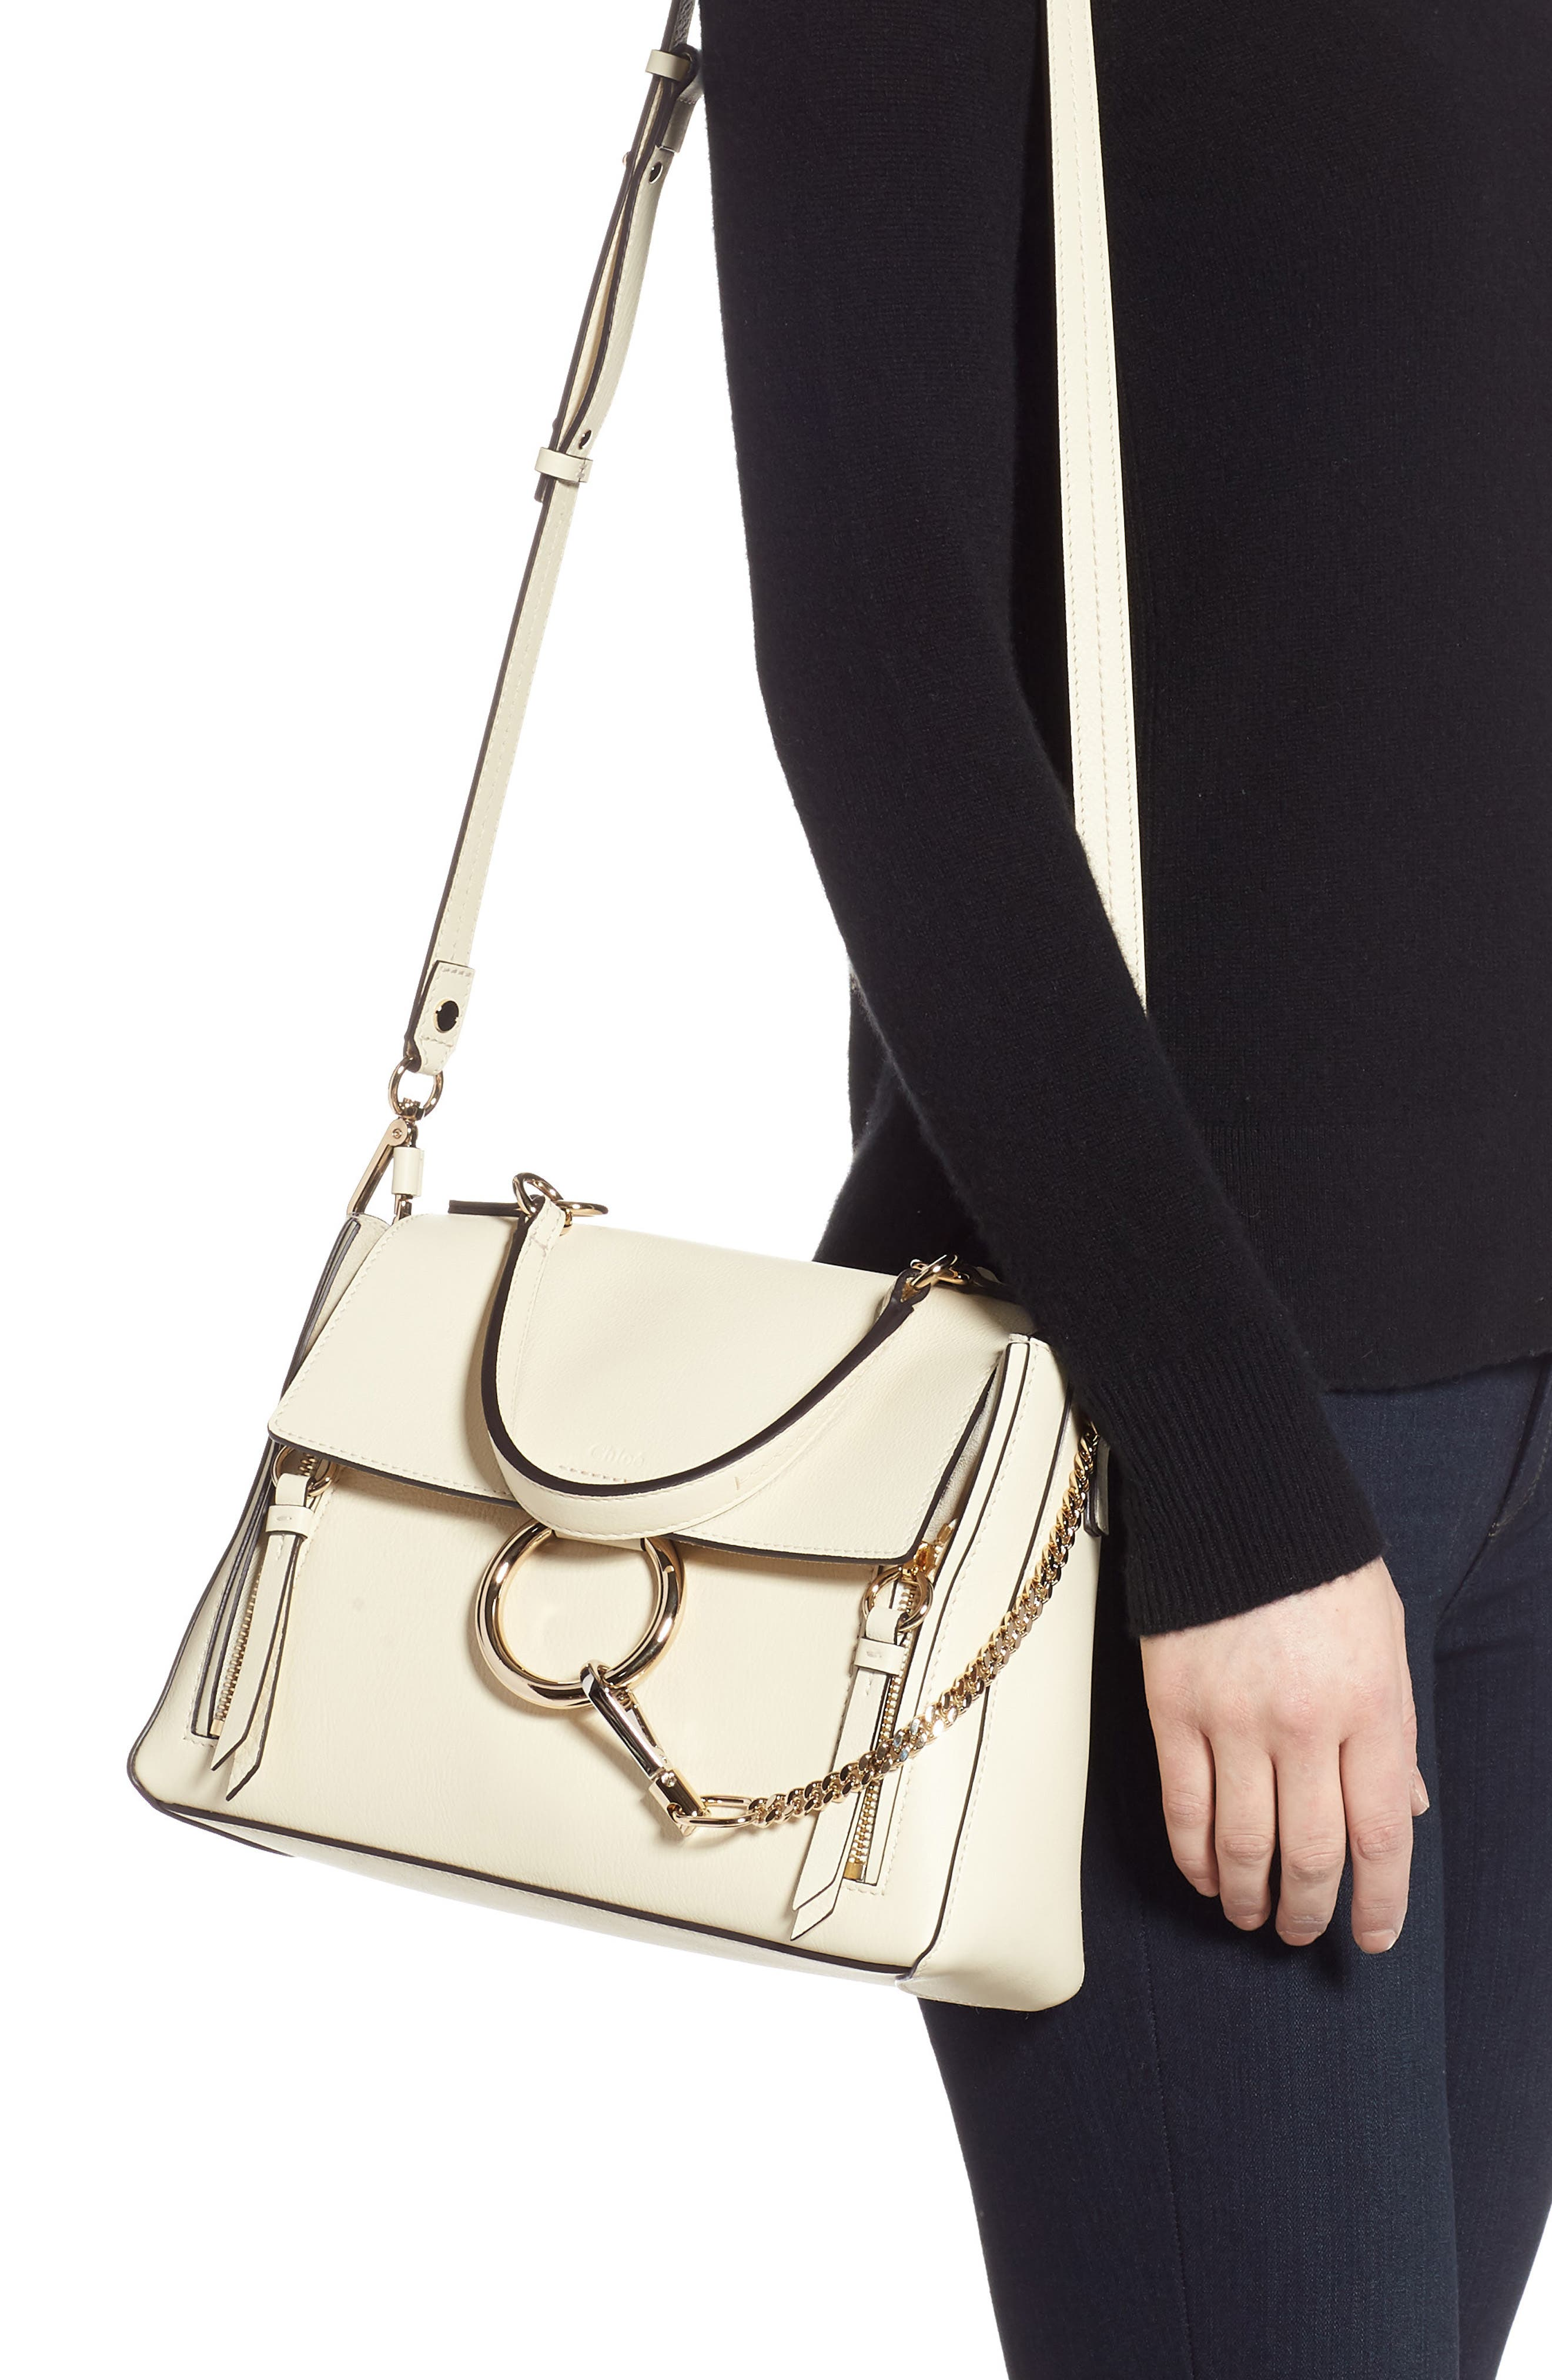 CHLOÉ,                             Small Faye Day Leather Shoulder Bag,                             Alternate thumbnail 2, color,                             905